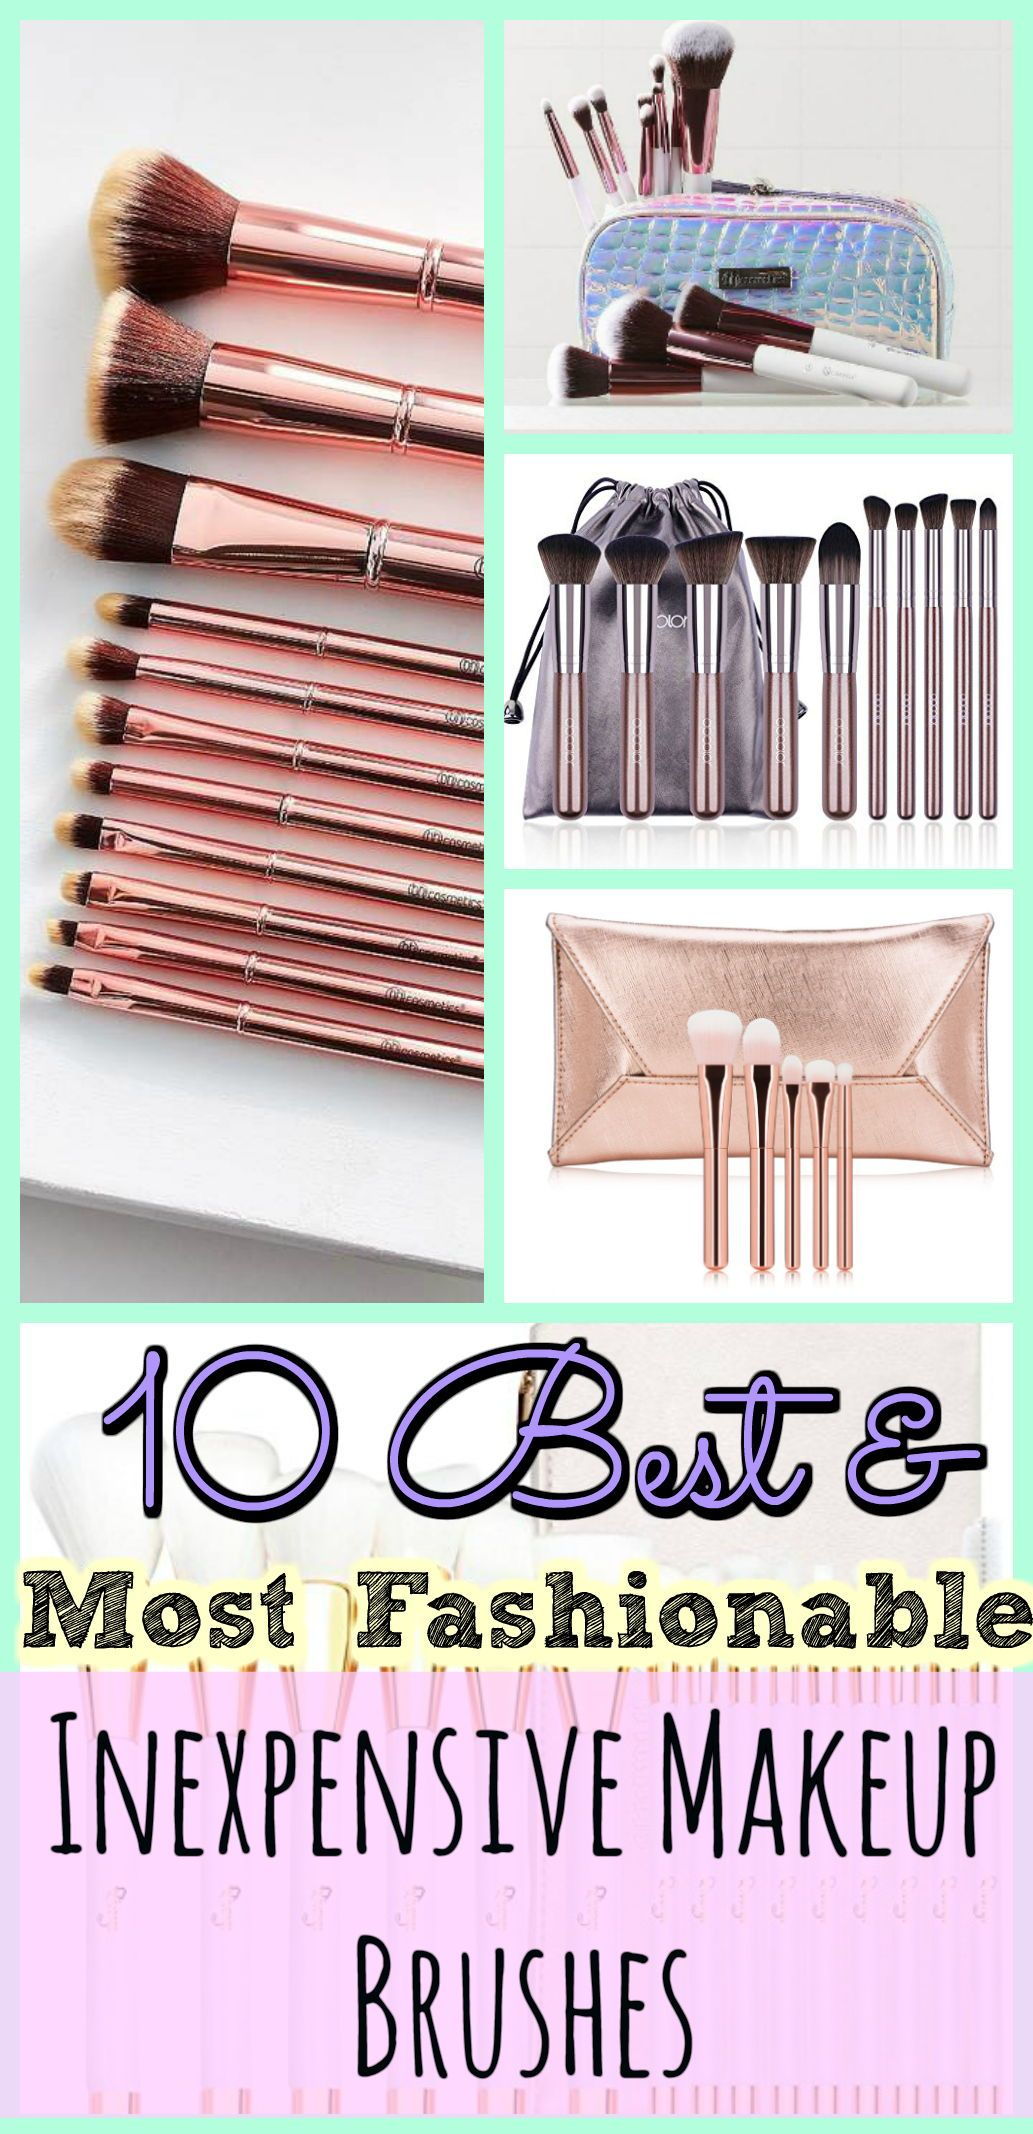 10 Of The Best Most Fashionable & Inexpensive Makeup